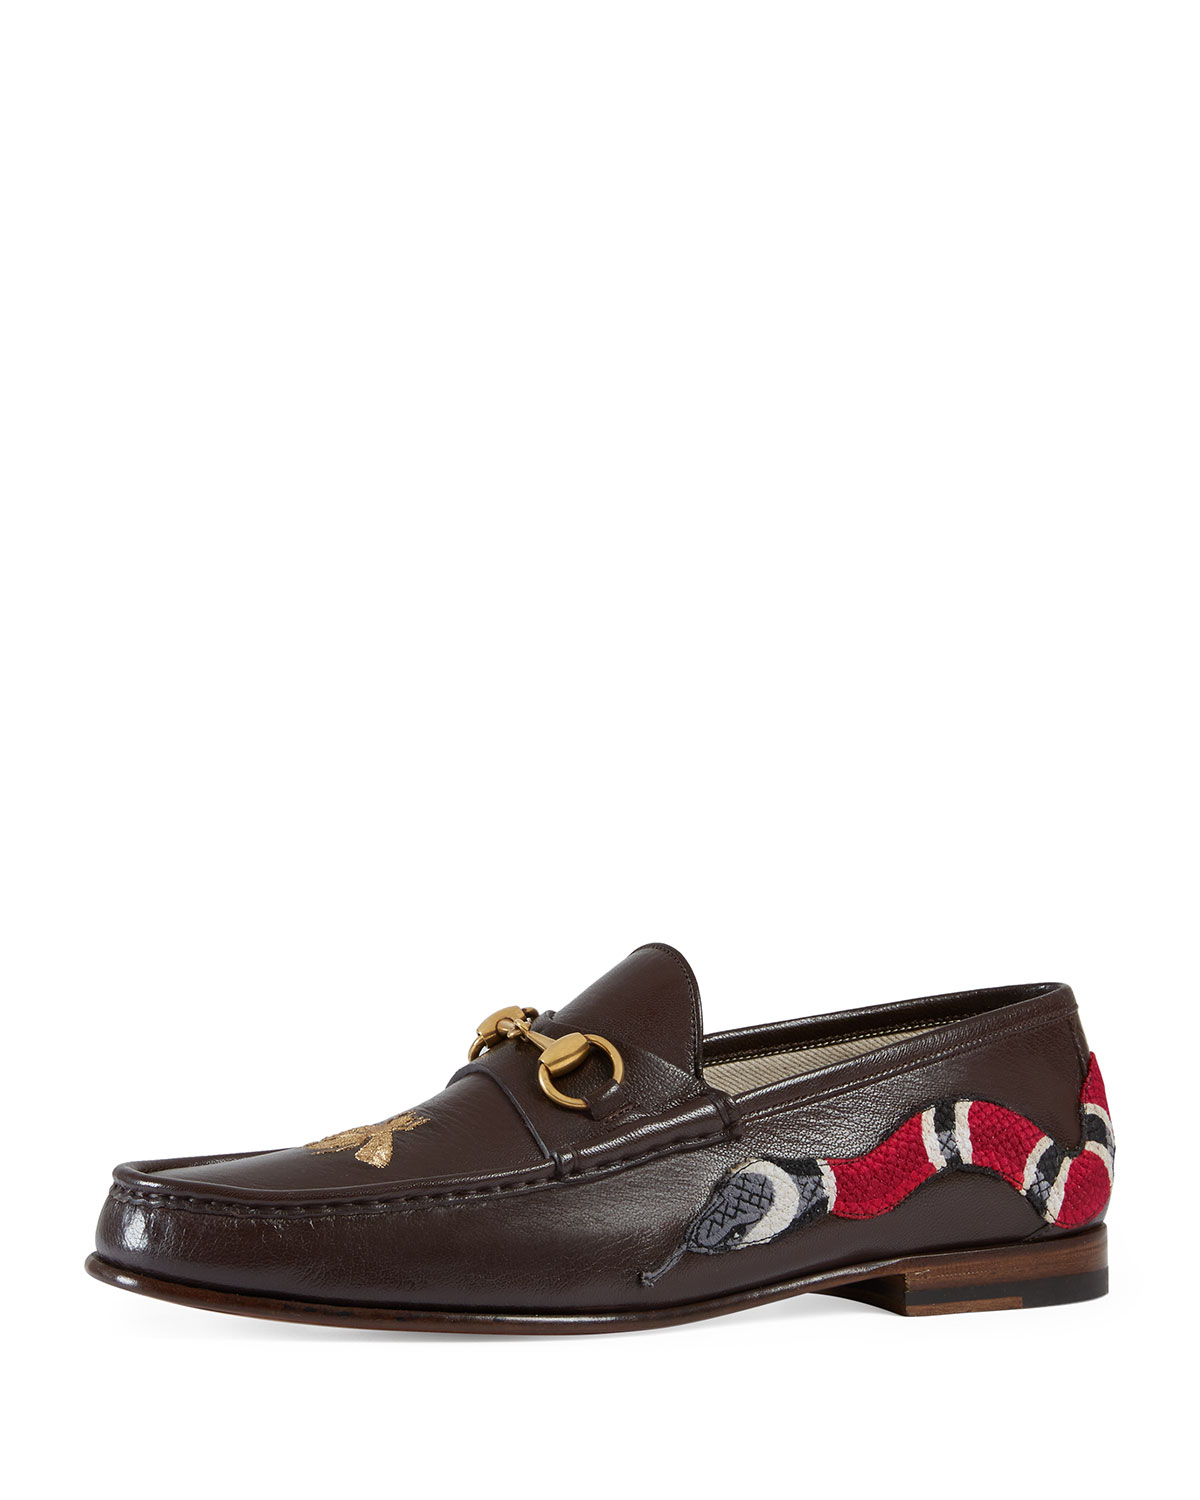 875948ce8 Gucci Roos Leather Moccasin Loafer with Snake, Brown | Neiman Marcus